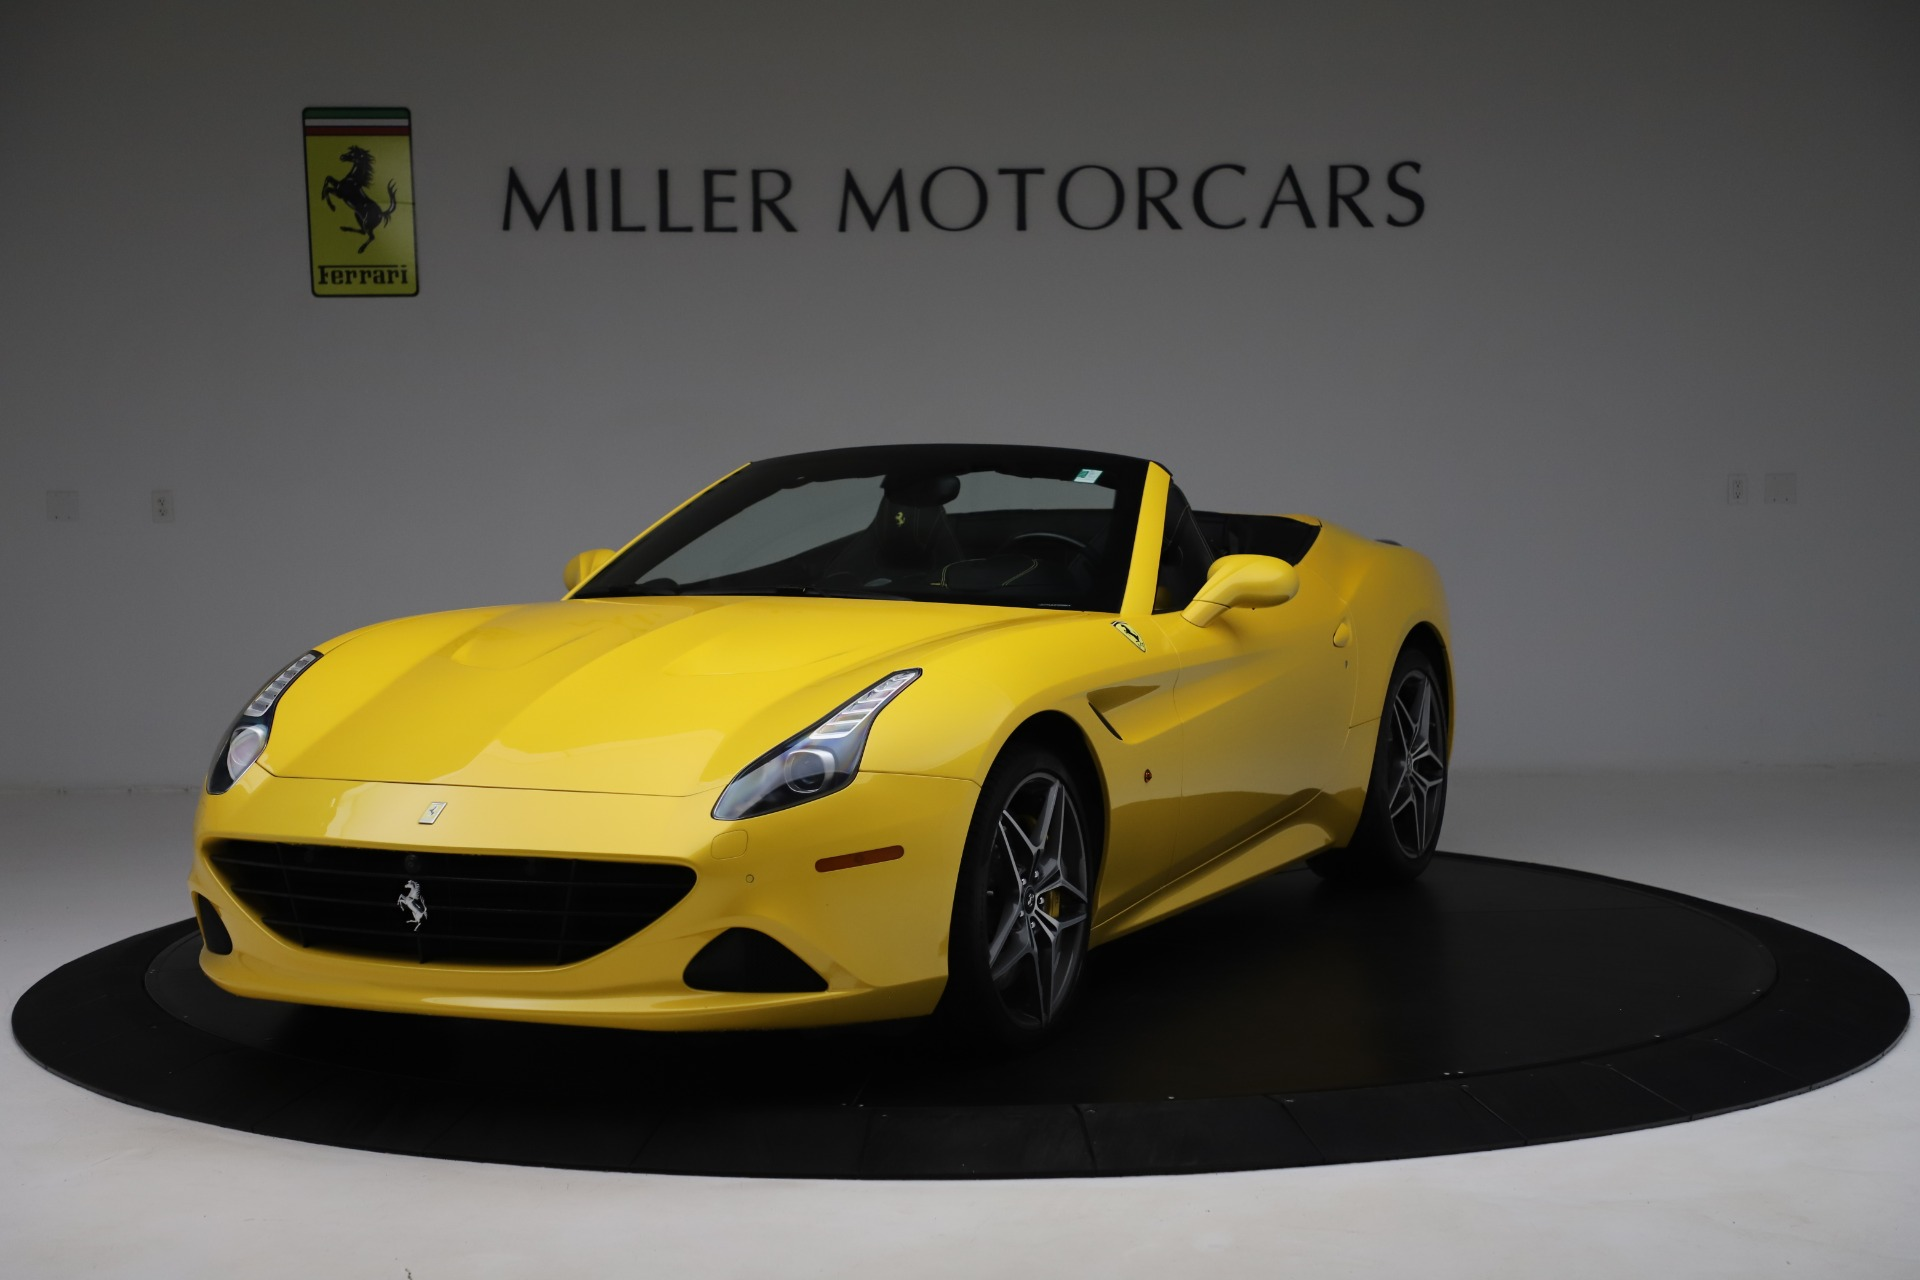 Used 2015 Ferrari California T for sale Sold at Maserati of Westport in Westport CT 06880 1